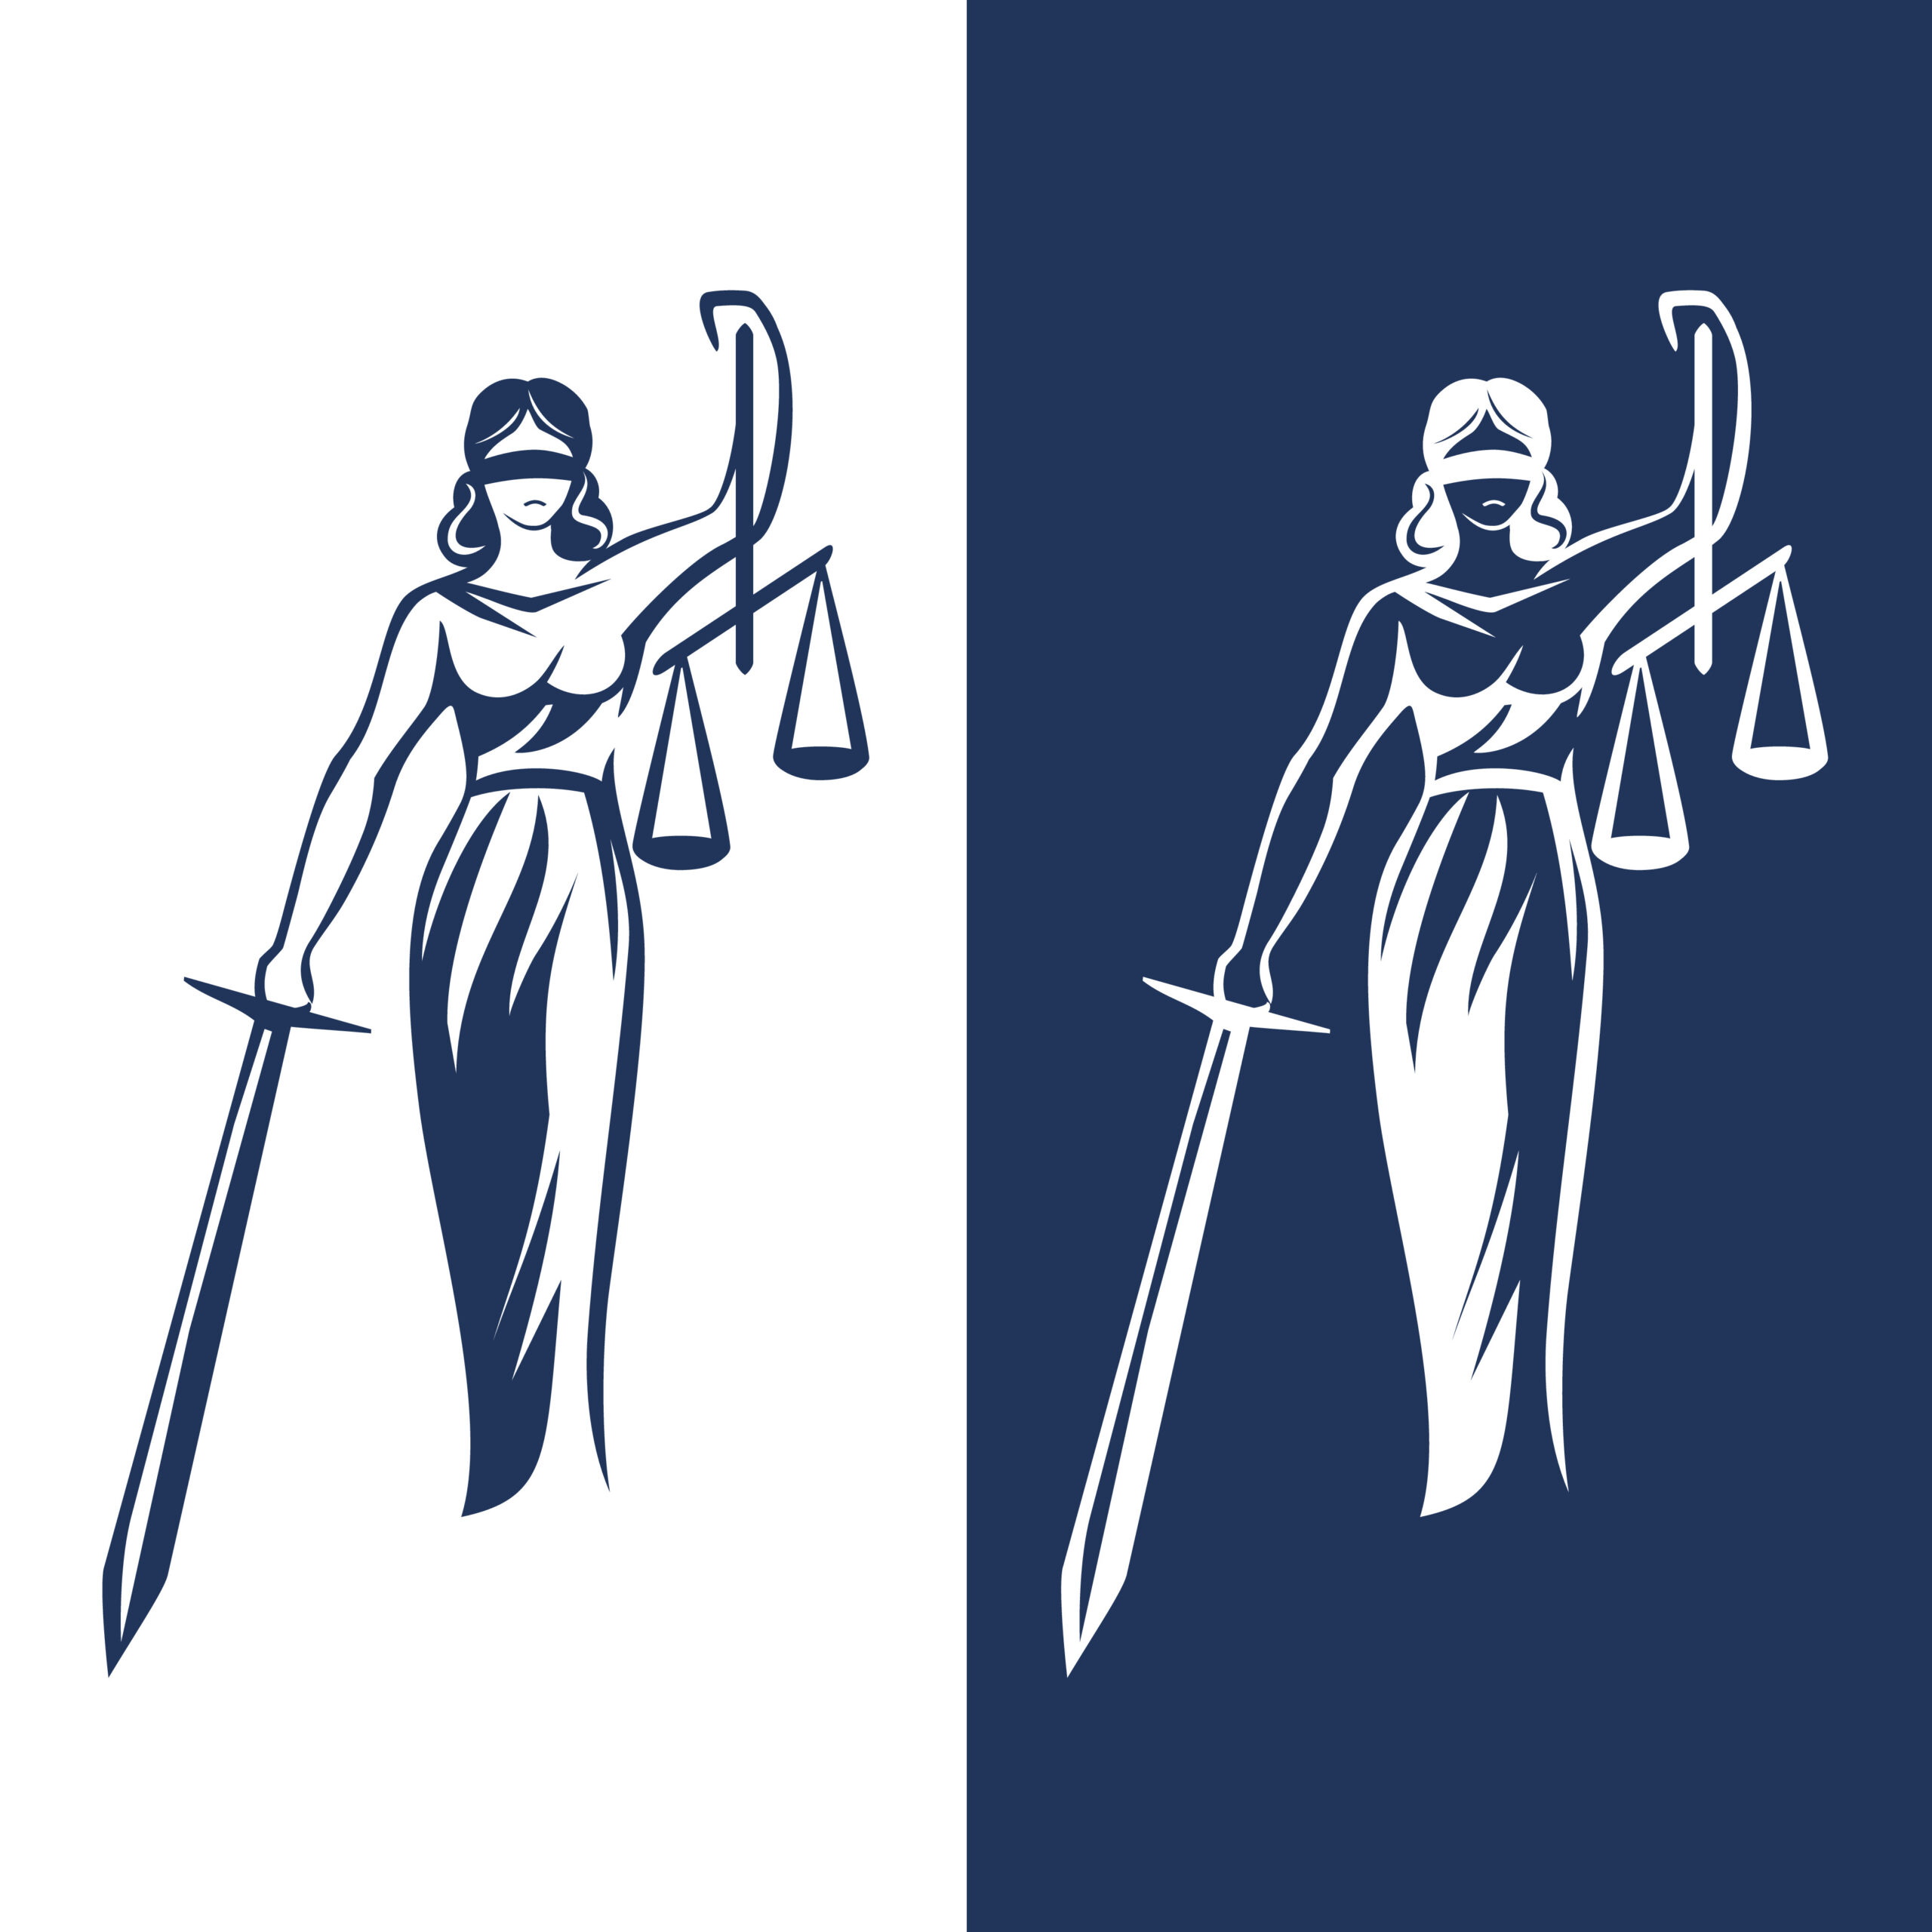 lady justice statue. Justice Goddess Themis, lady justice Femida. Stylized contour vector. Blind woman holding scales and sword.